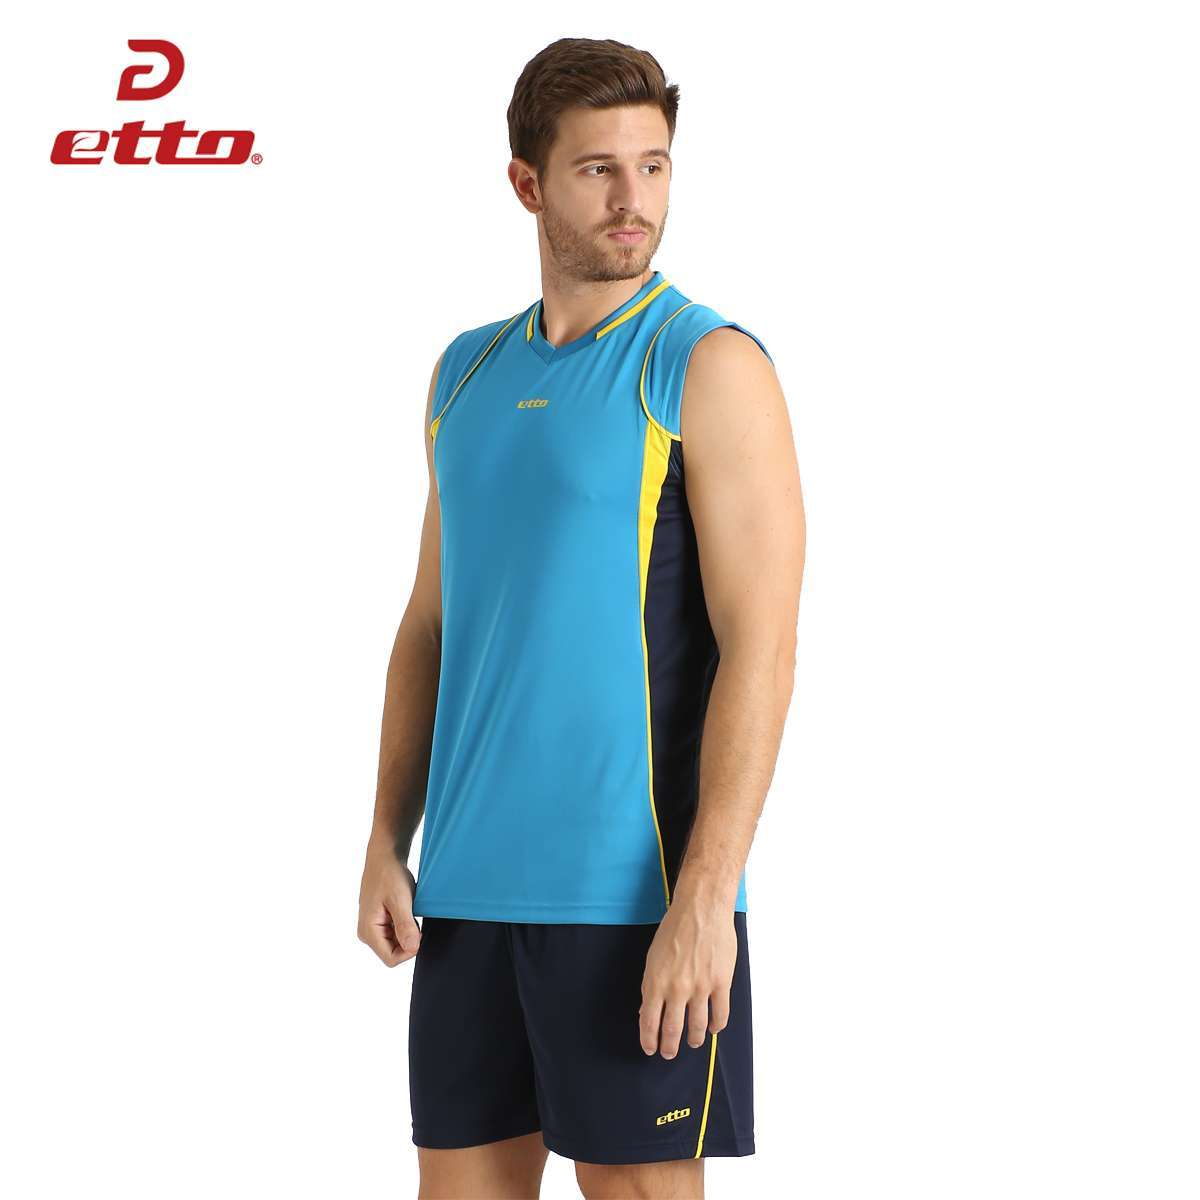 Etto Professional Men Sleeveless Volleyball Set Team Uniforms Breathable Quick dry Volleyball Jersey Suit Sportswear HXB002 1